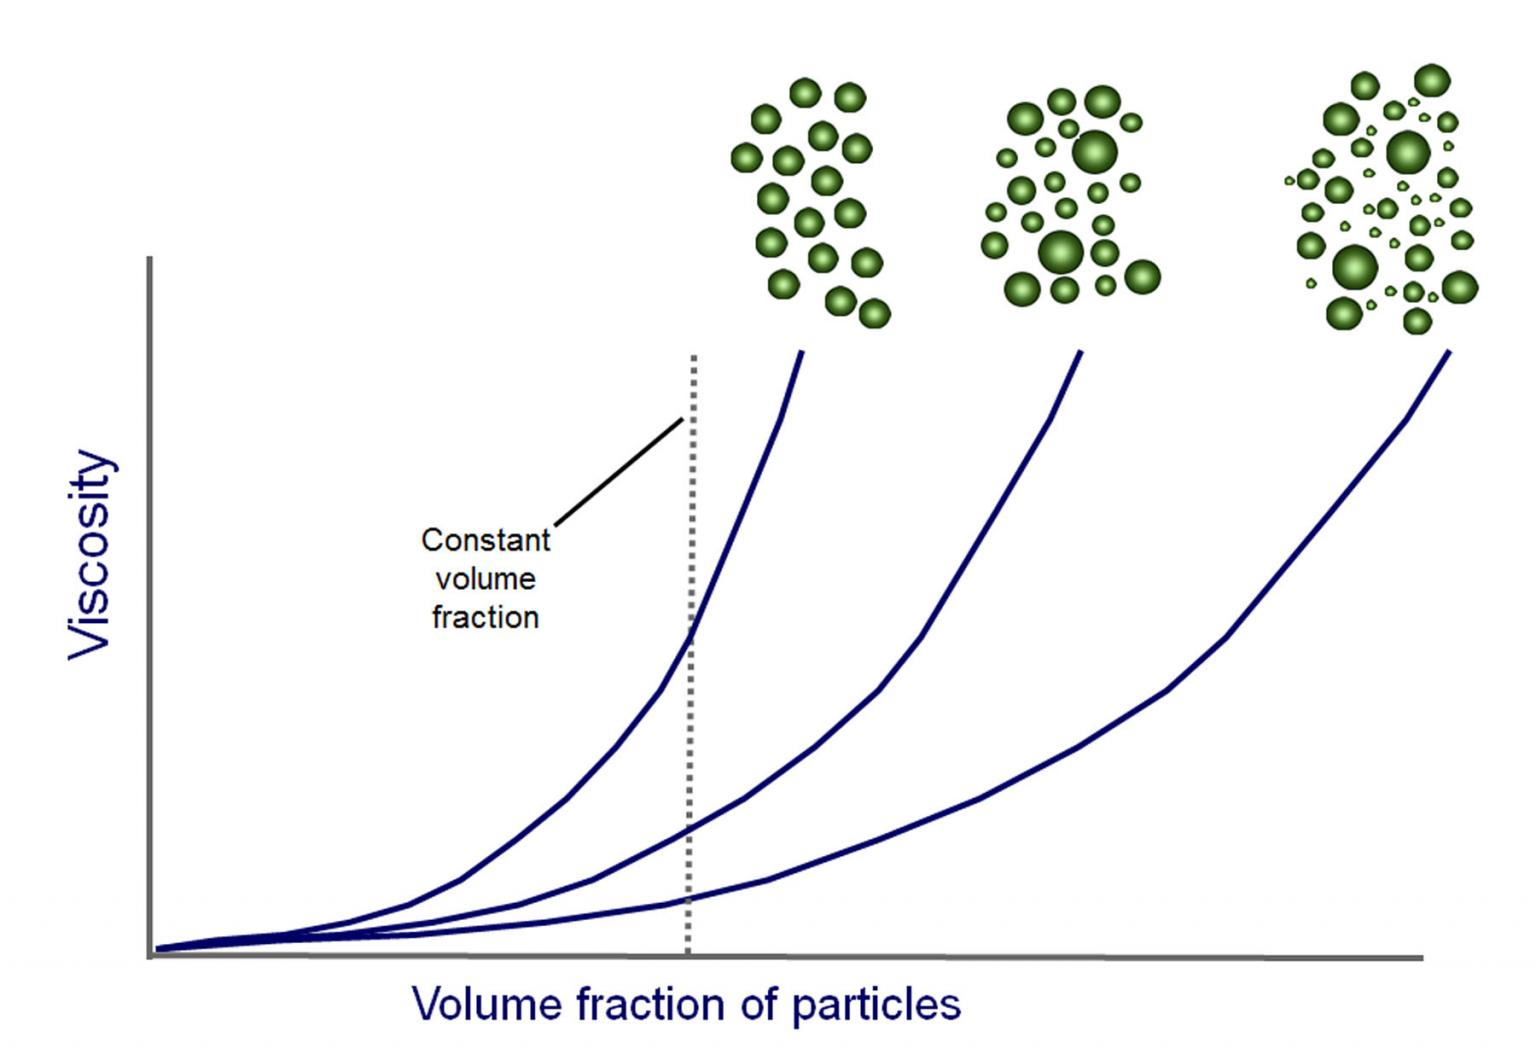 Particle size distribution is just one of the parameters that can influence the viscosity of suspensions